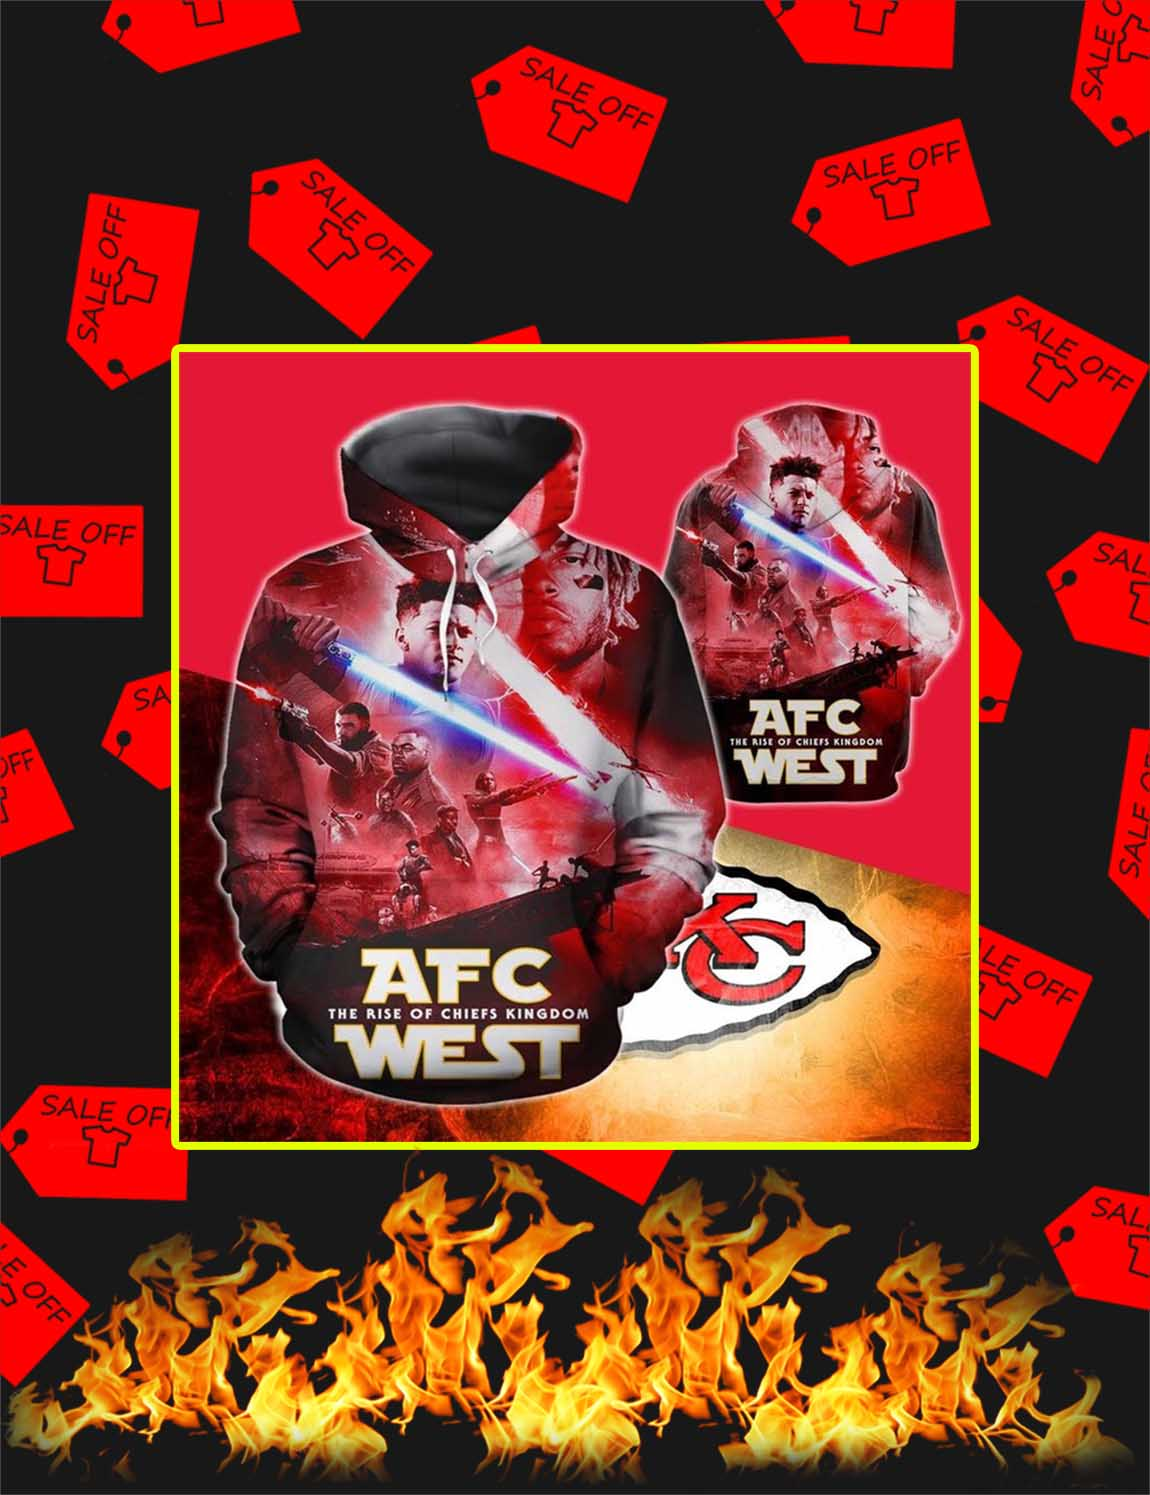 AFC The Rise Of Chiefs Kingdom West 3D Hoodie